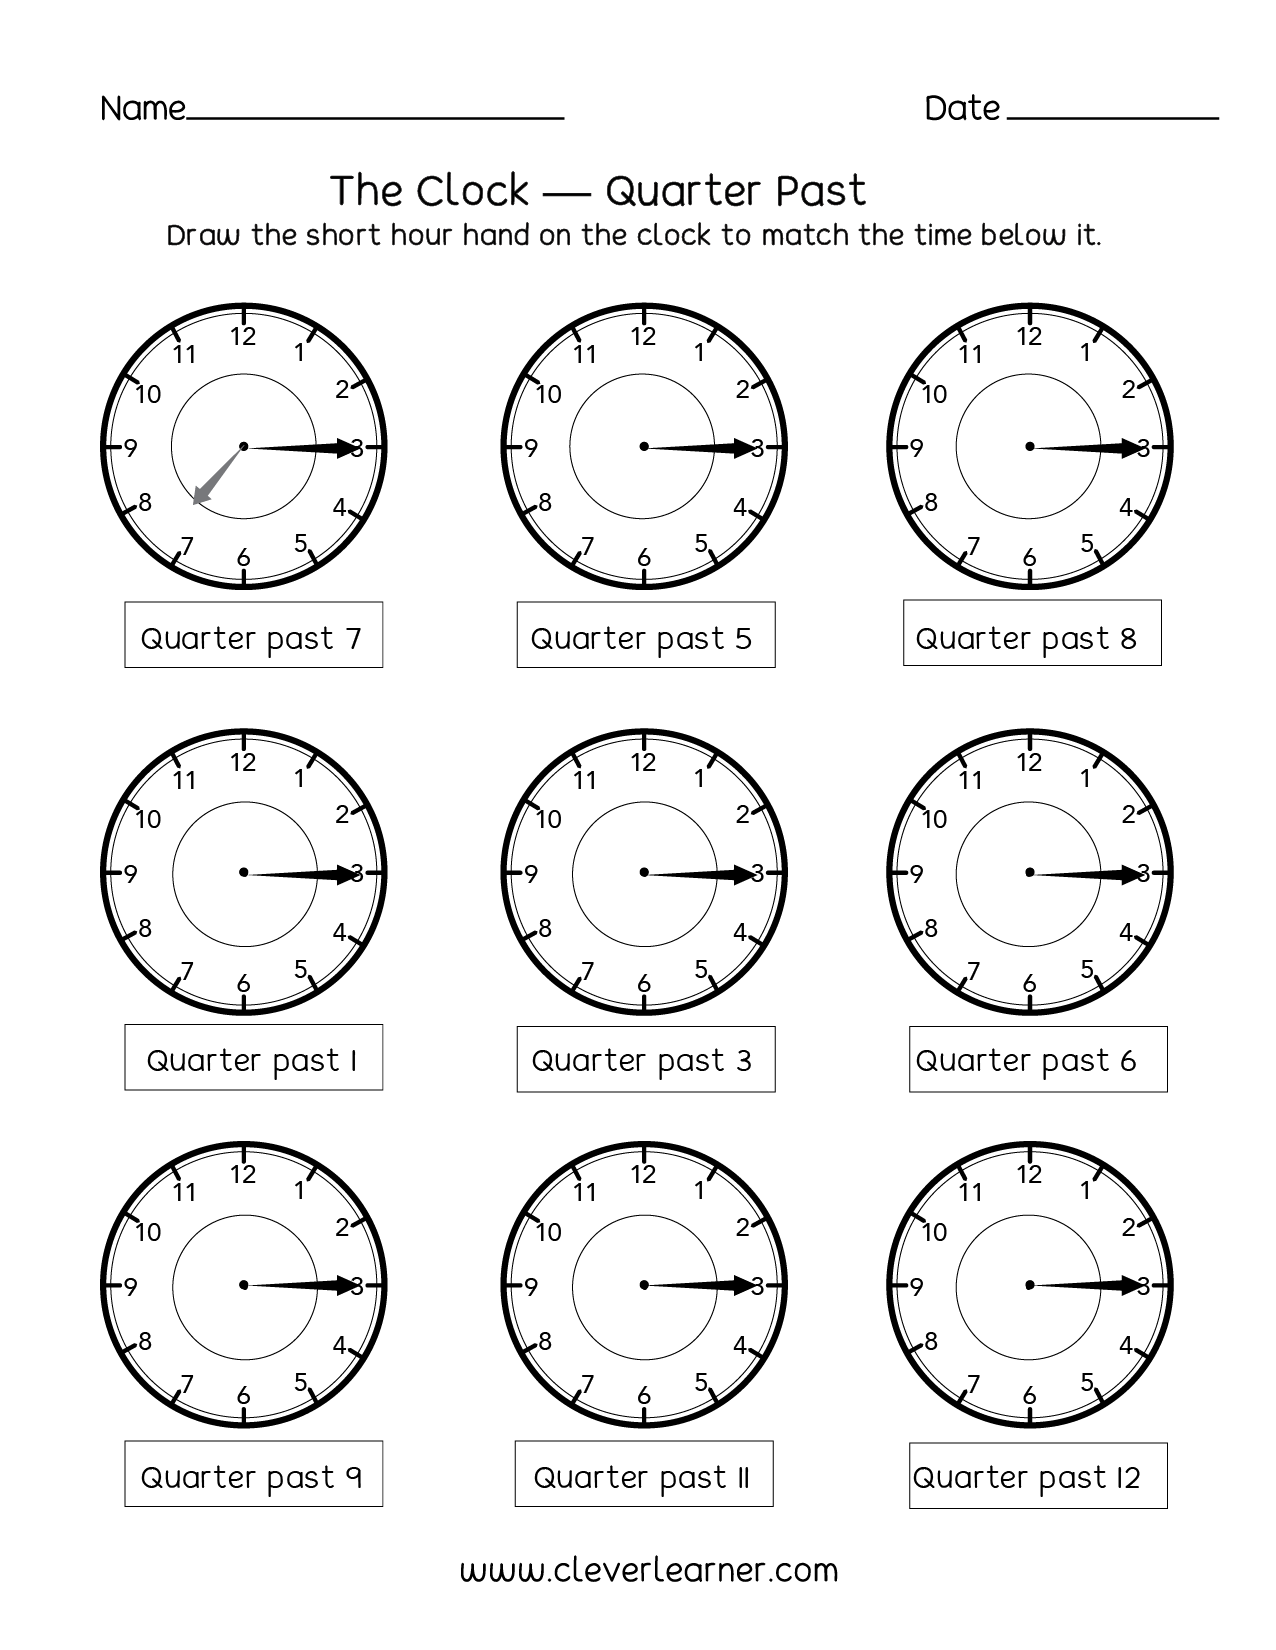 hight resolution of Telling Time Worksheets - O'clock And Half Past on Worksheets Ideas 3073